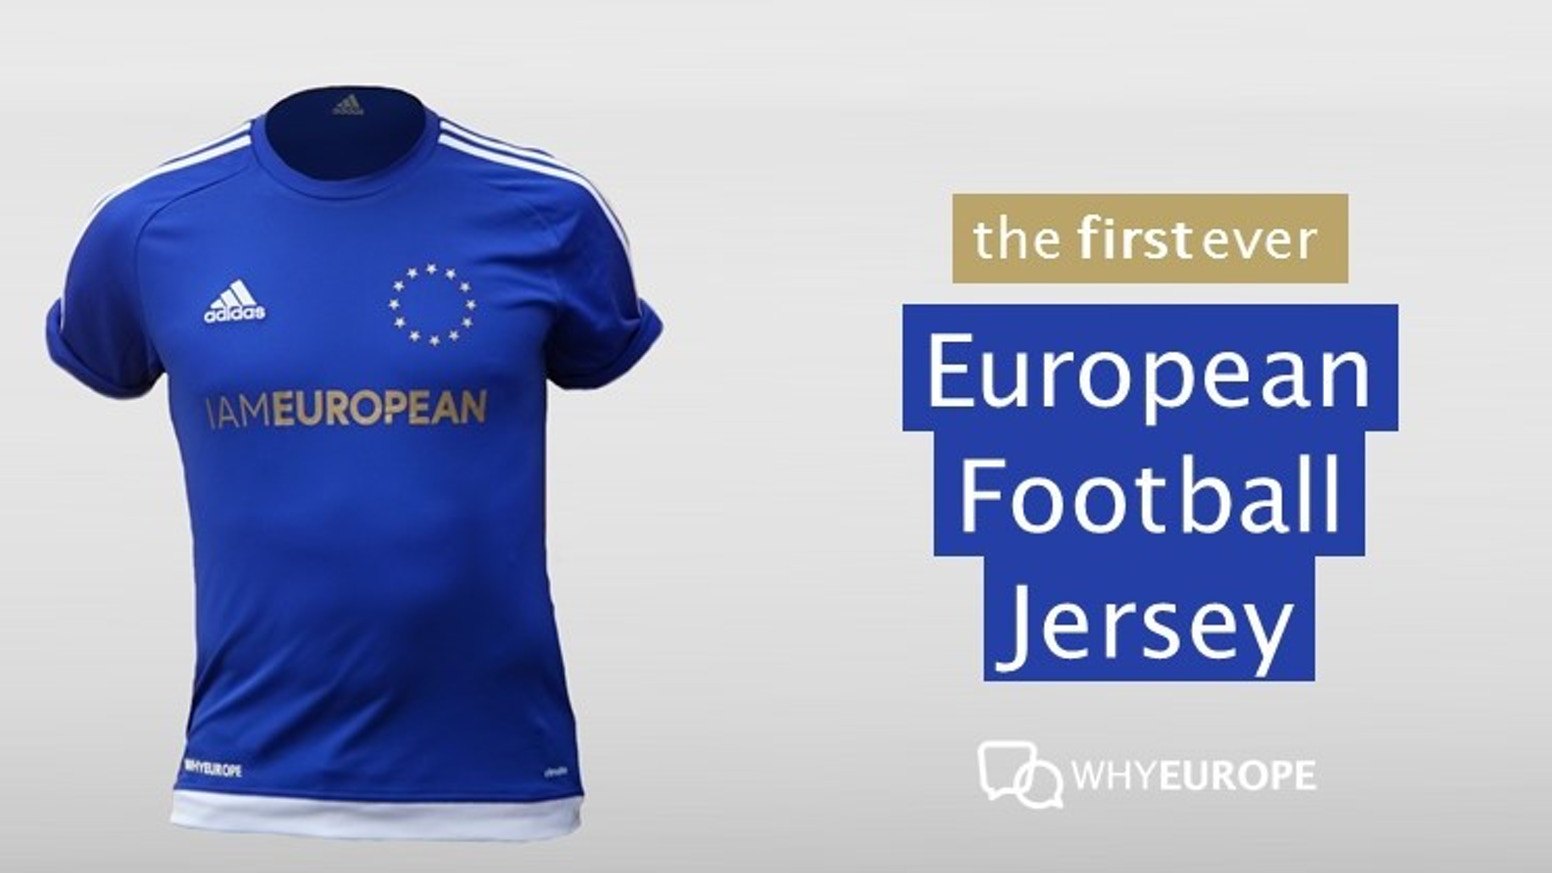 Show your European Spirit.